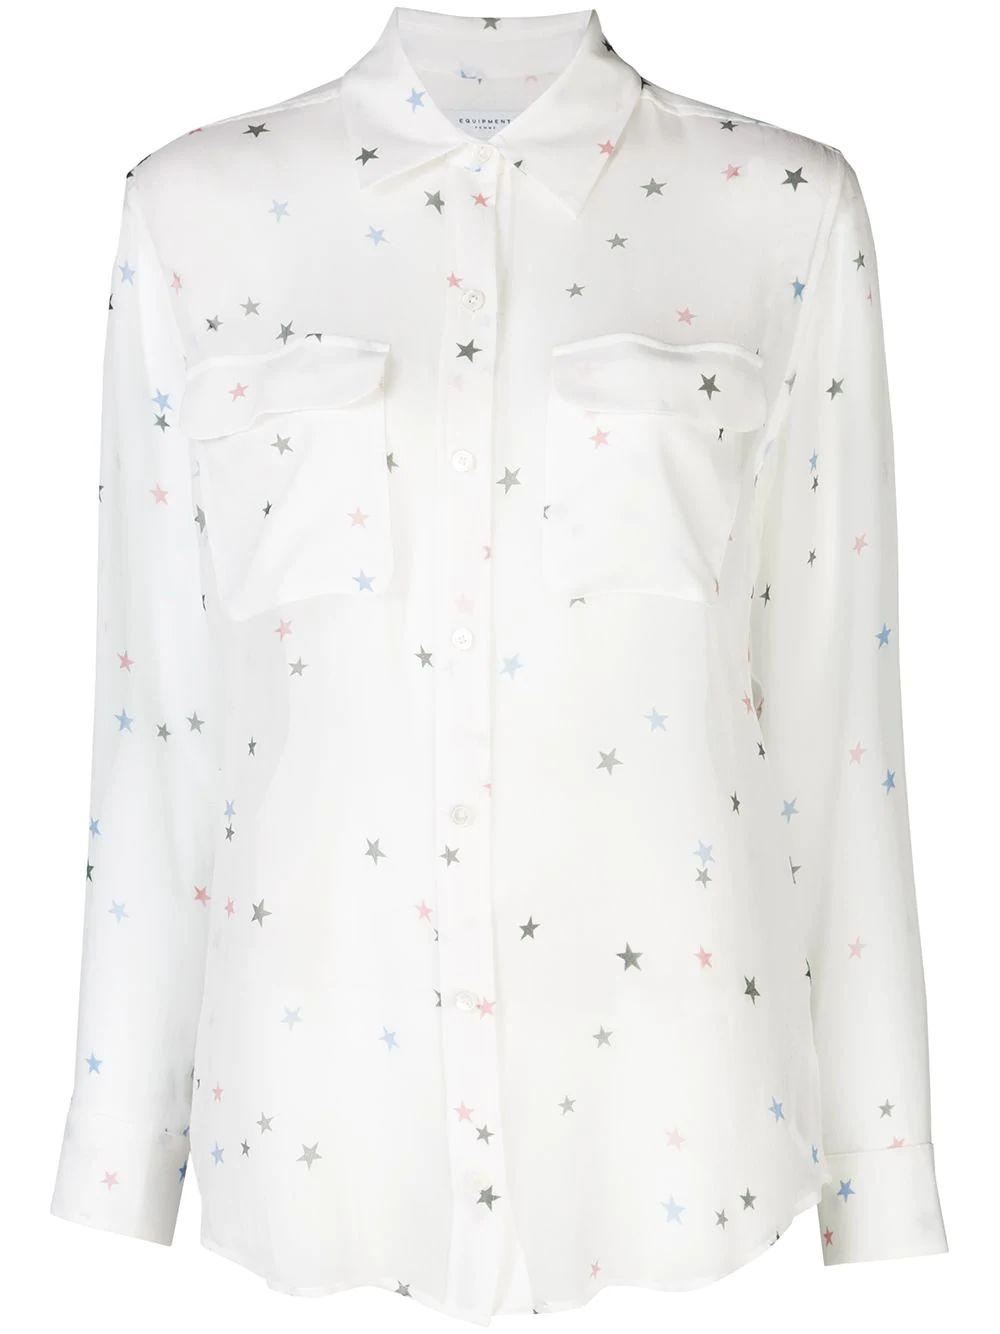 Signature Confetti Sheer Blouse